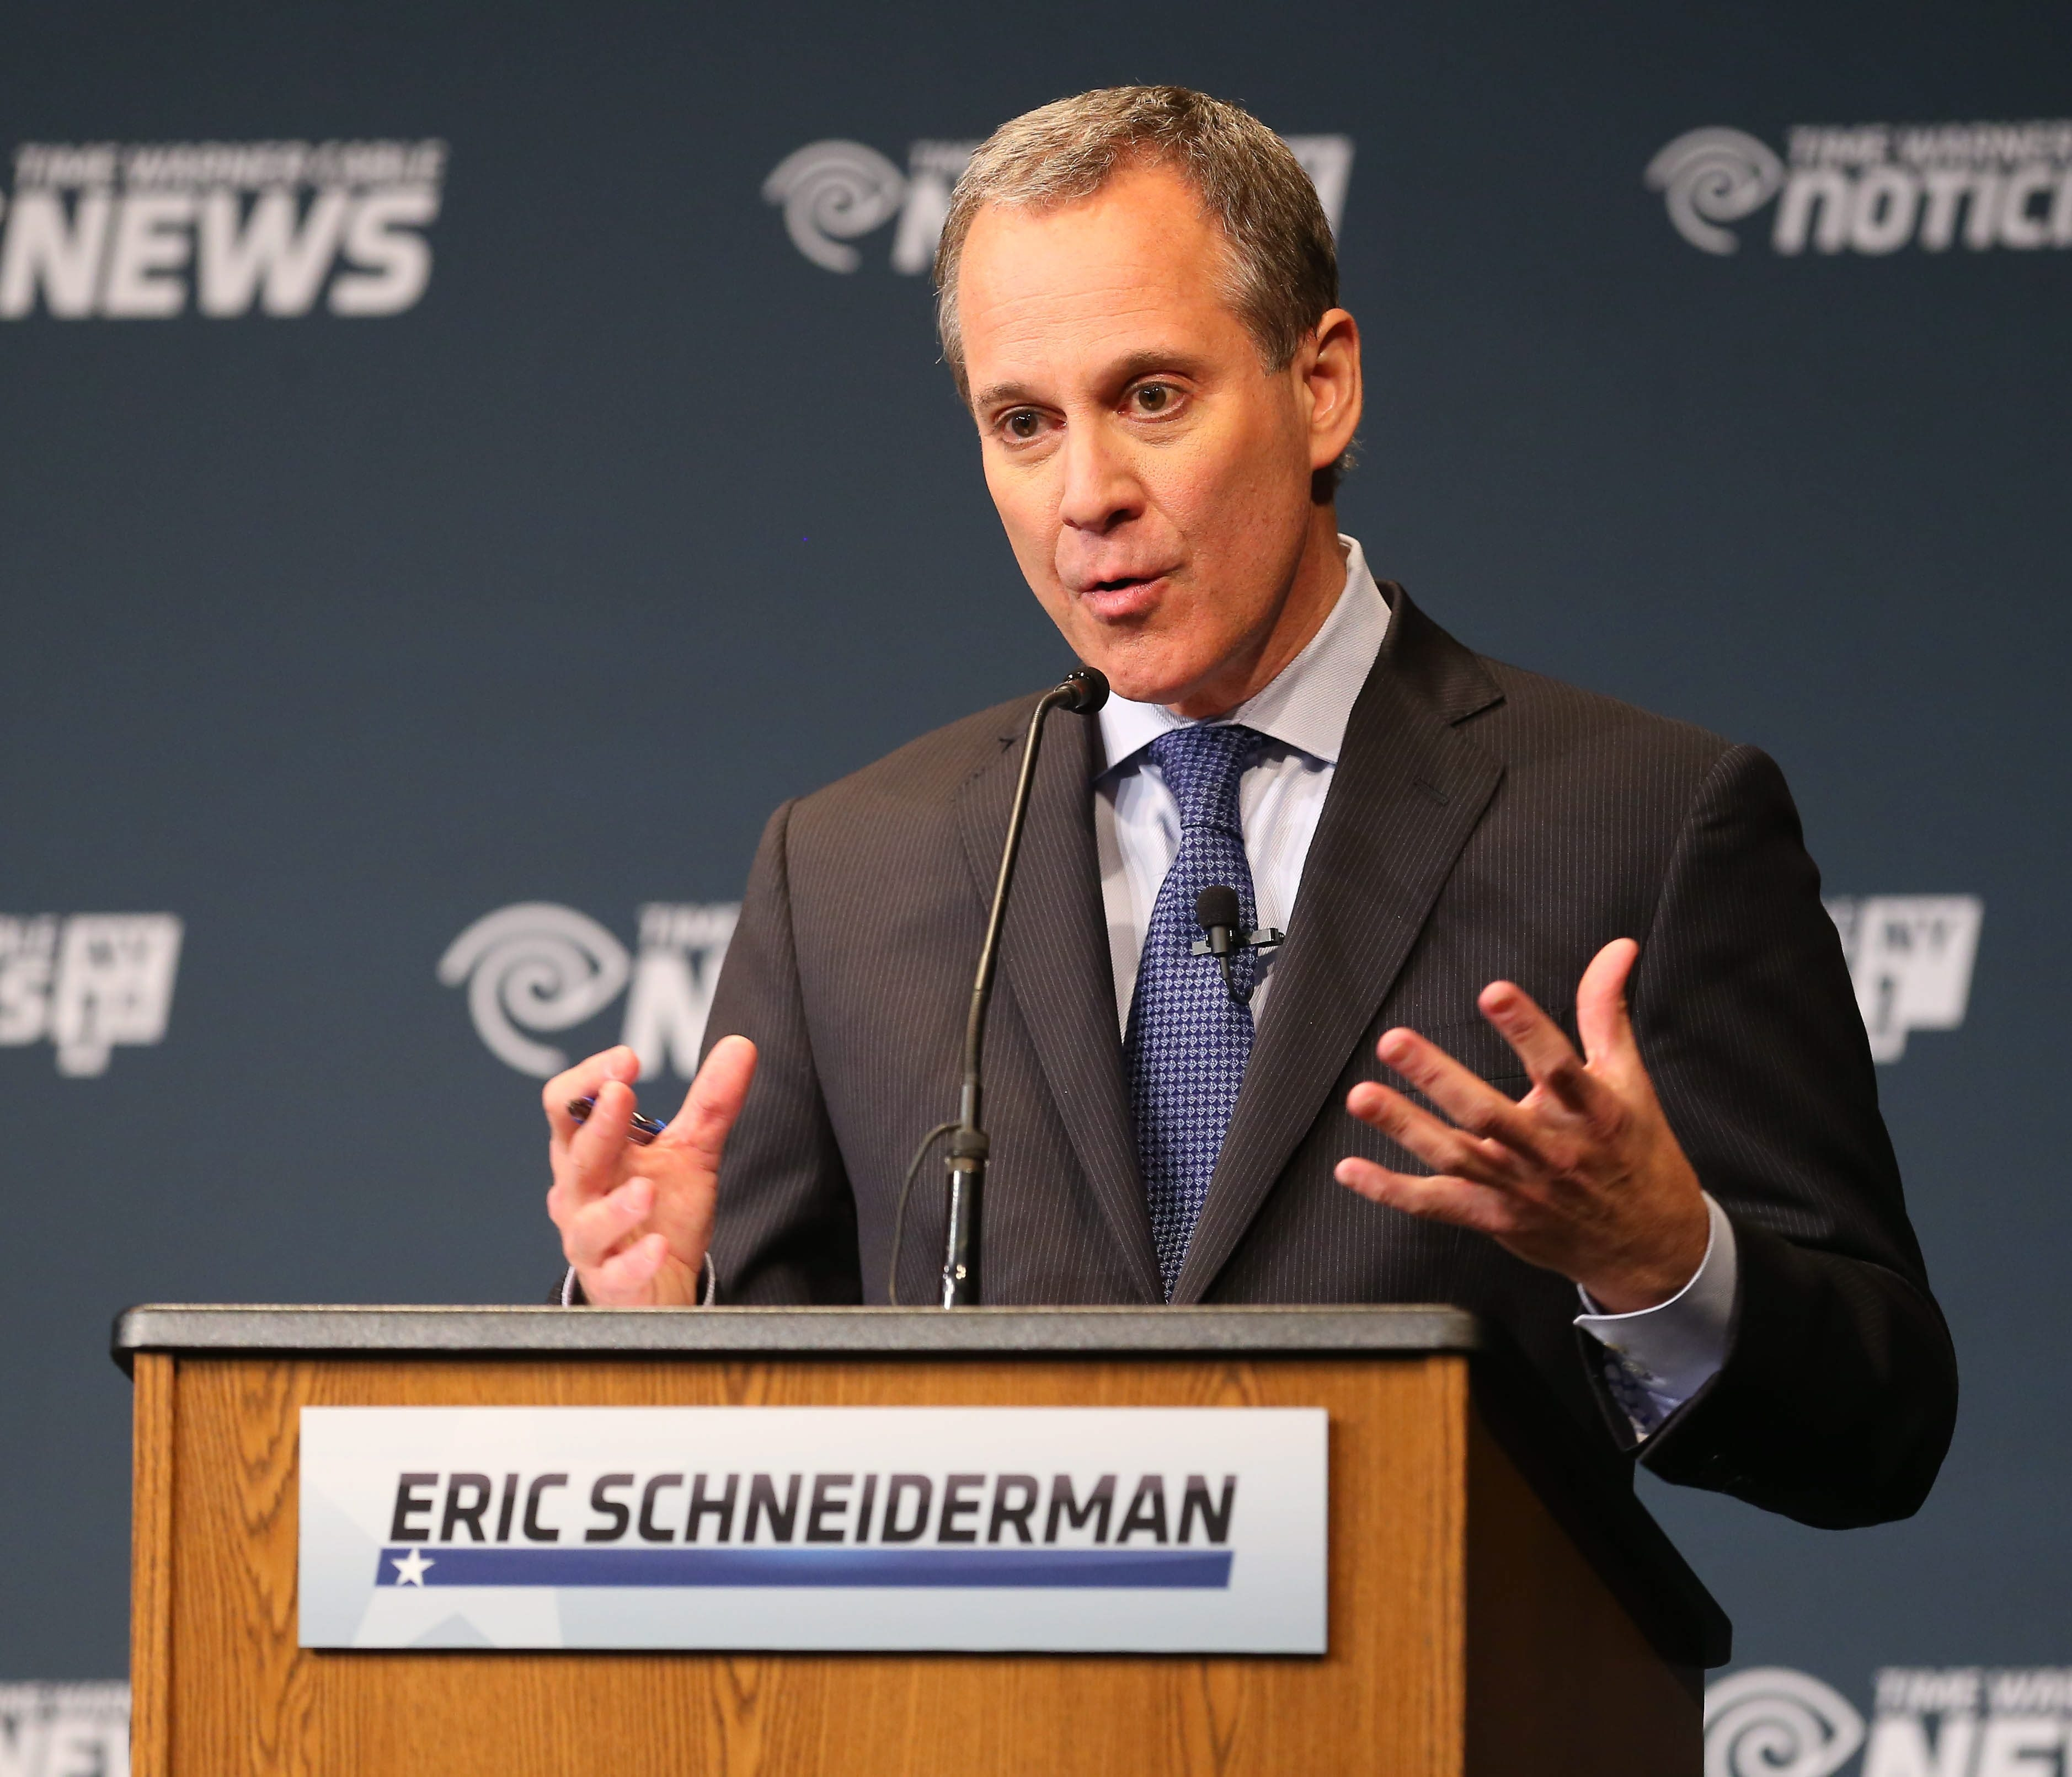 State Attorney General Eric T. Schneiderman responds to complaints on member costs.